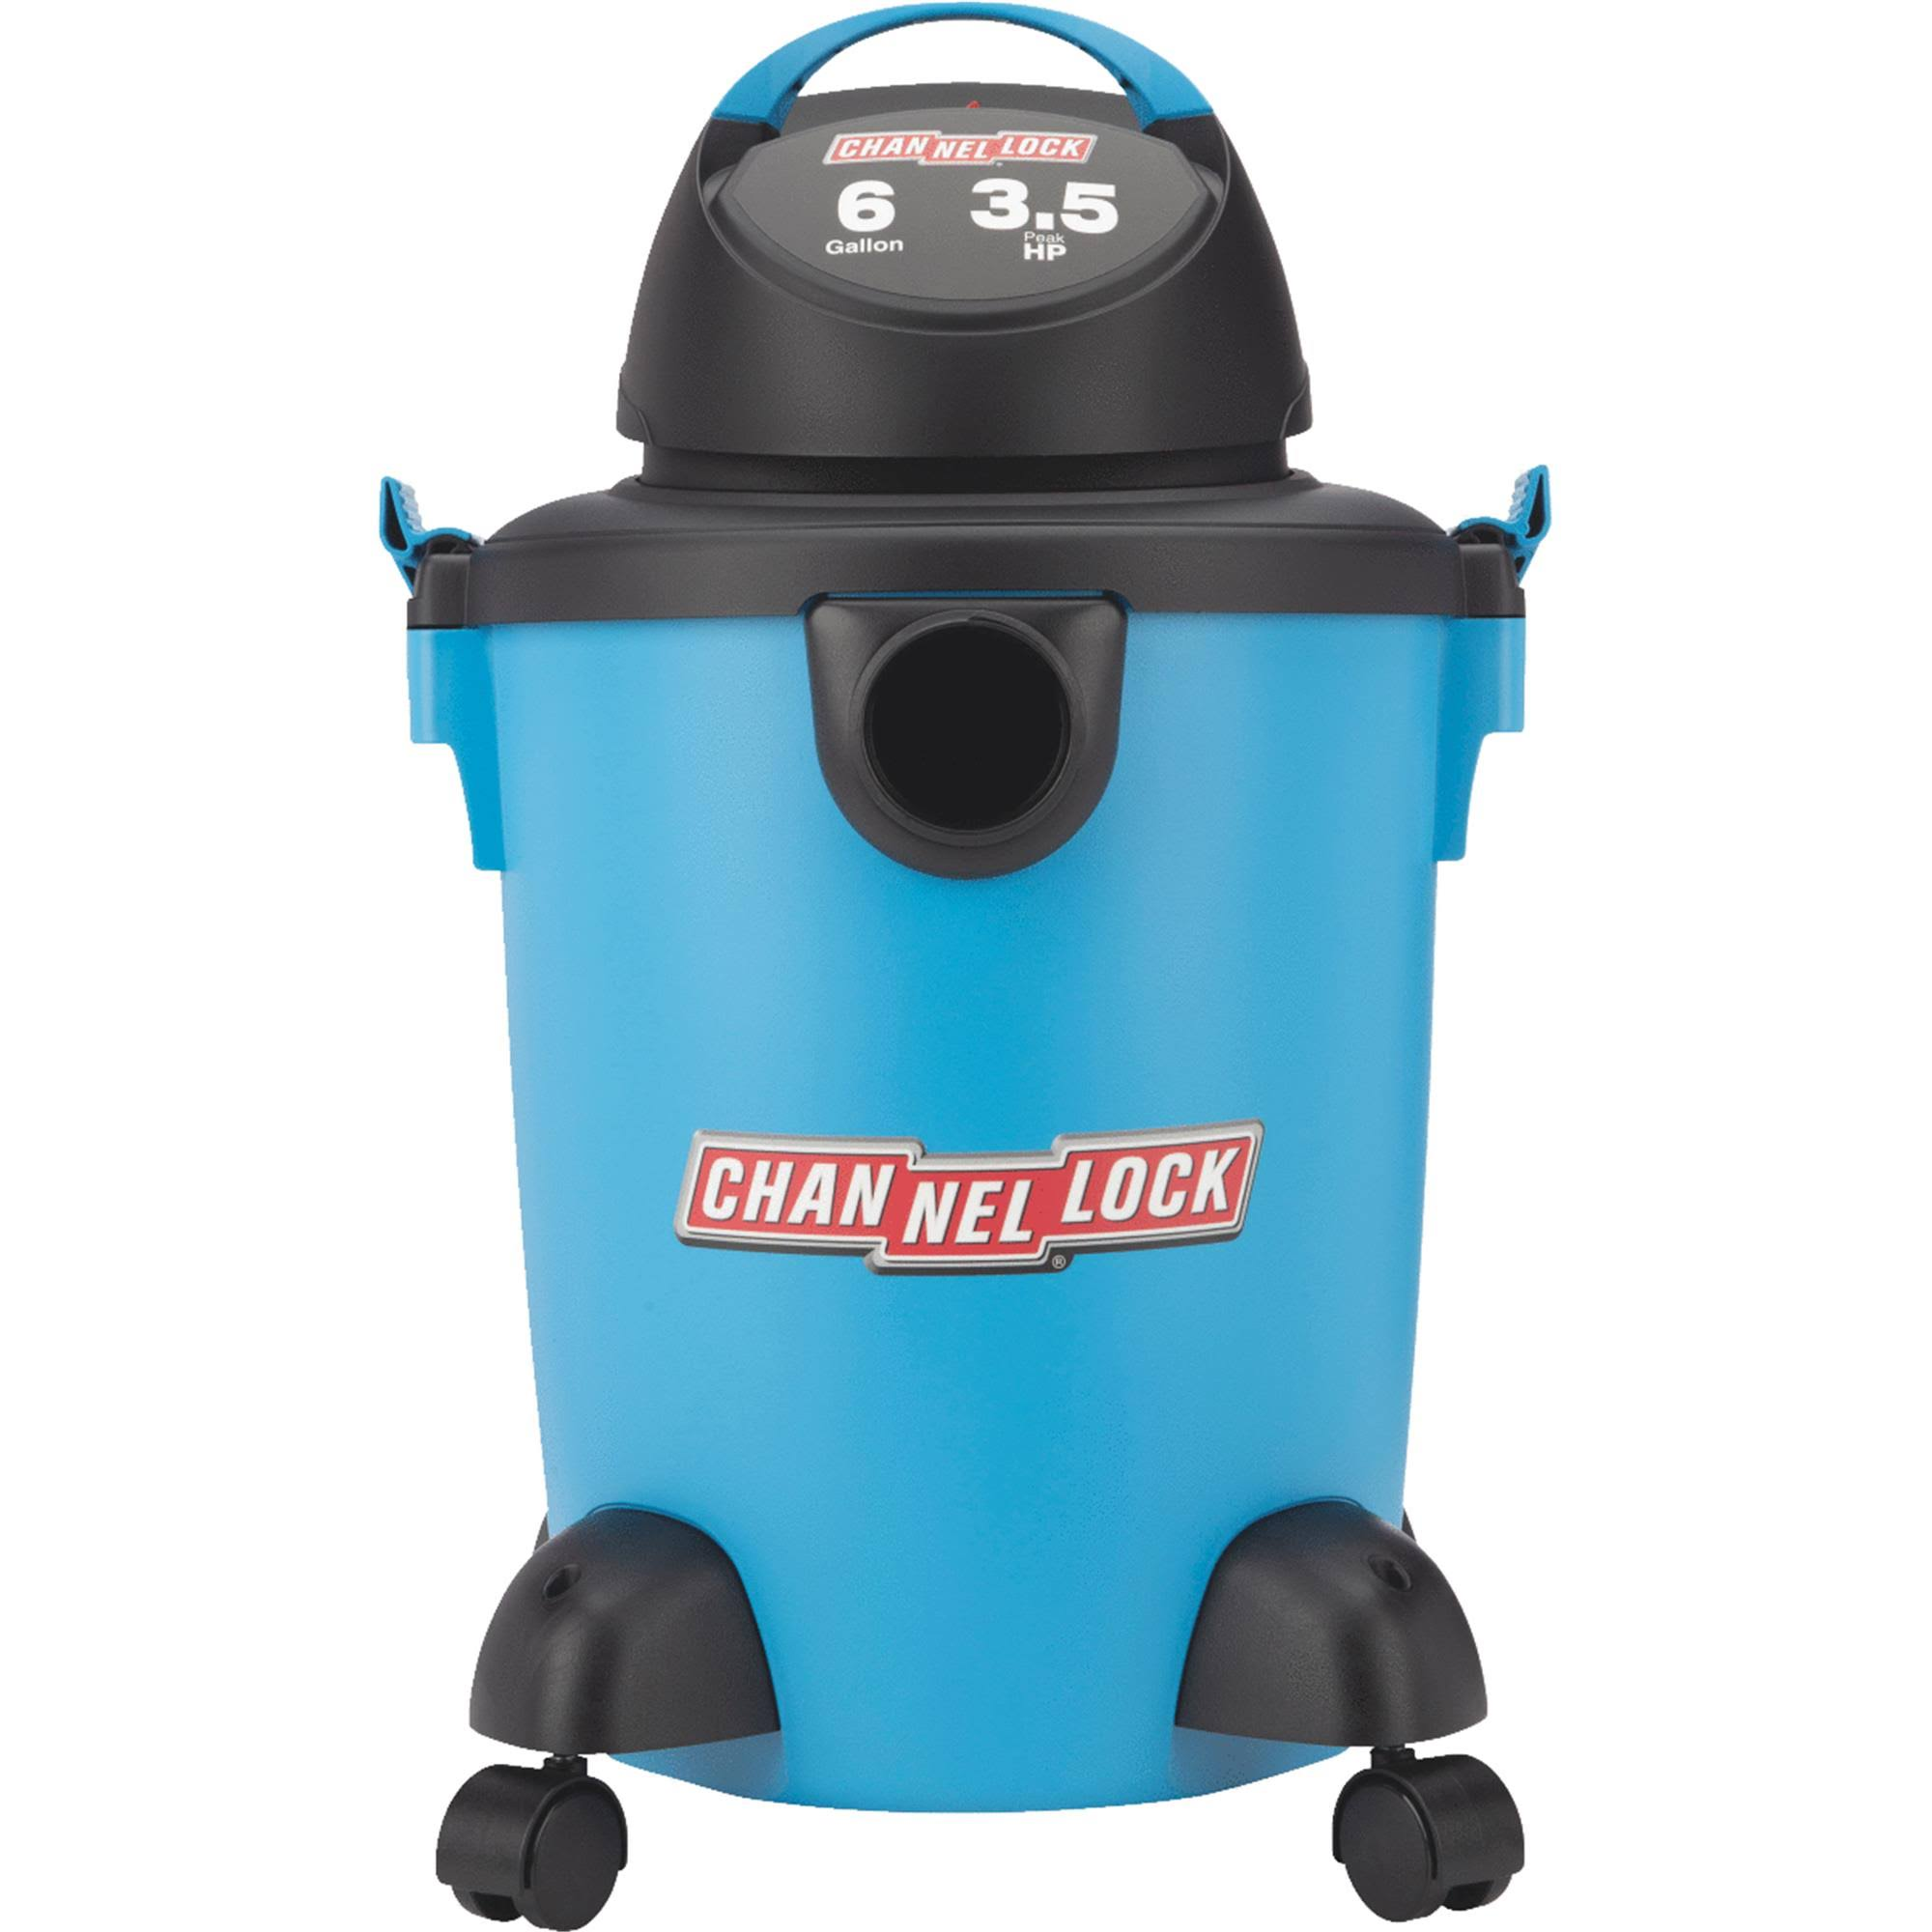 Channellock 6 gal. 3.5 HP Wet/Dry Vacuum 5902600